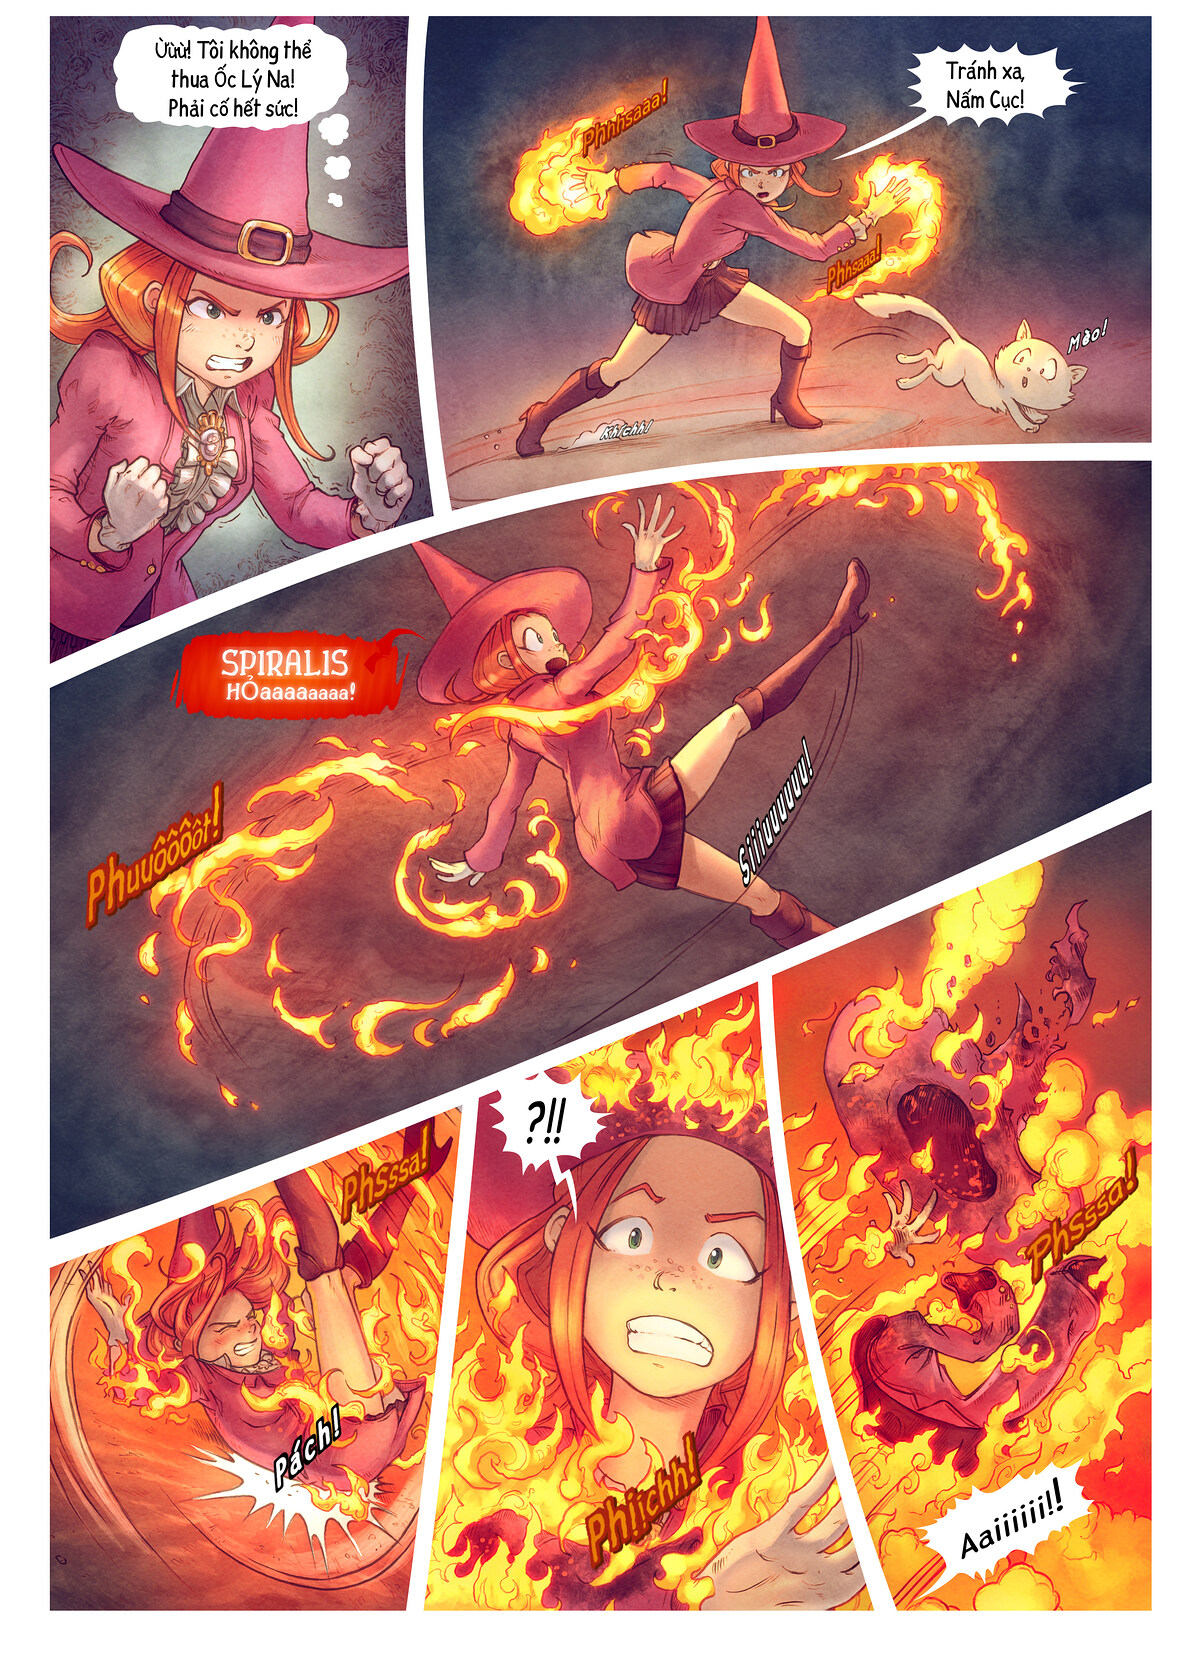 A webcomic page of Pepper&Carrot, Tập 22 [vi], trang 8